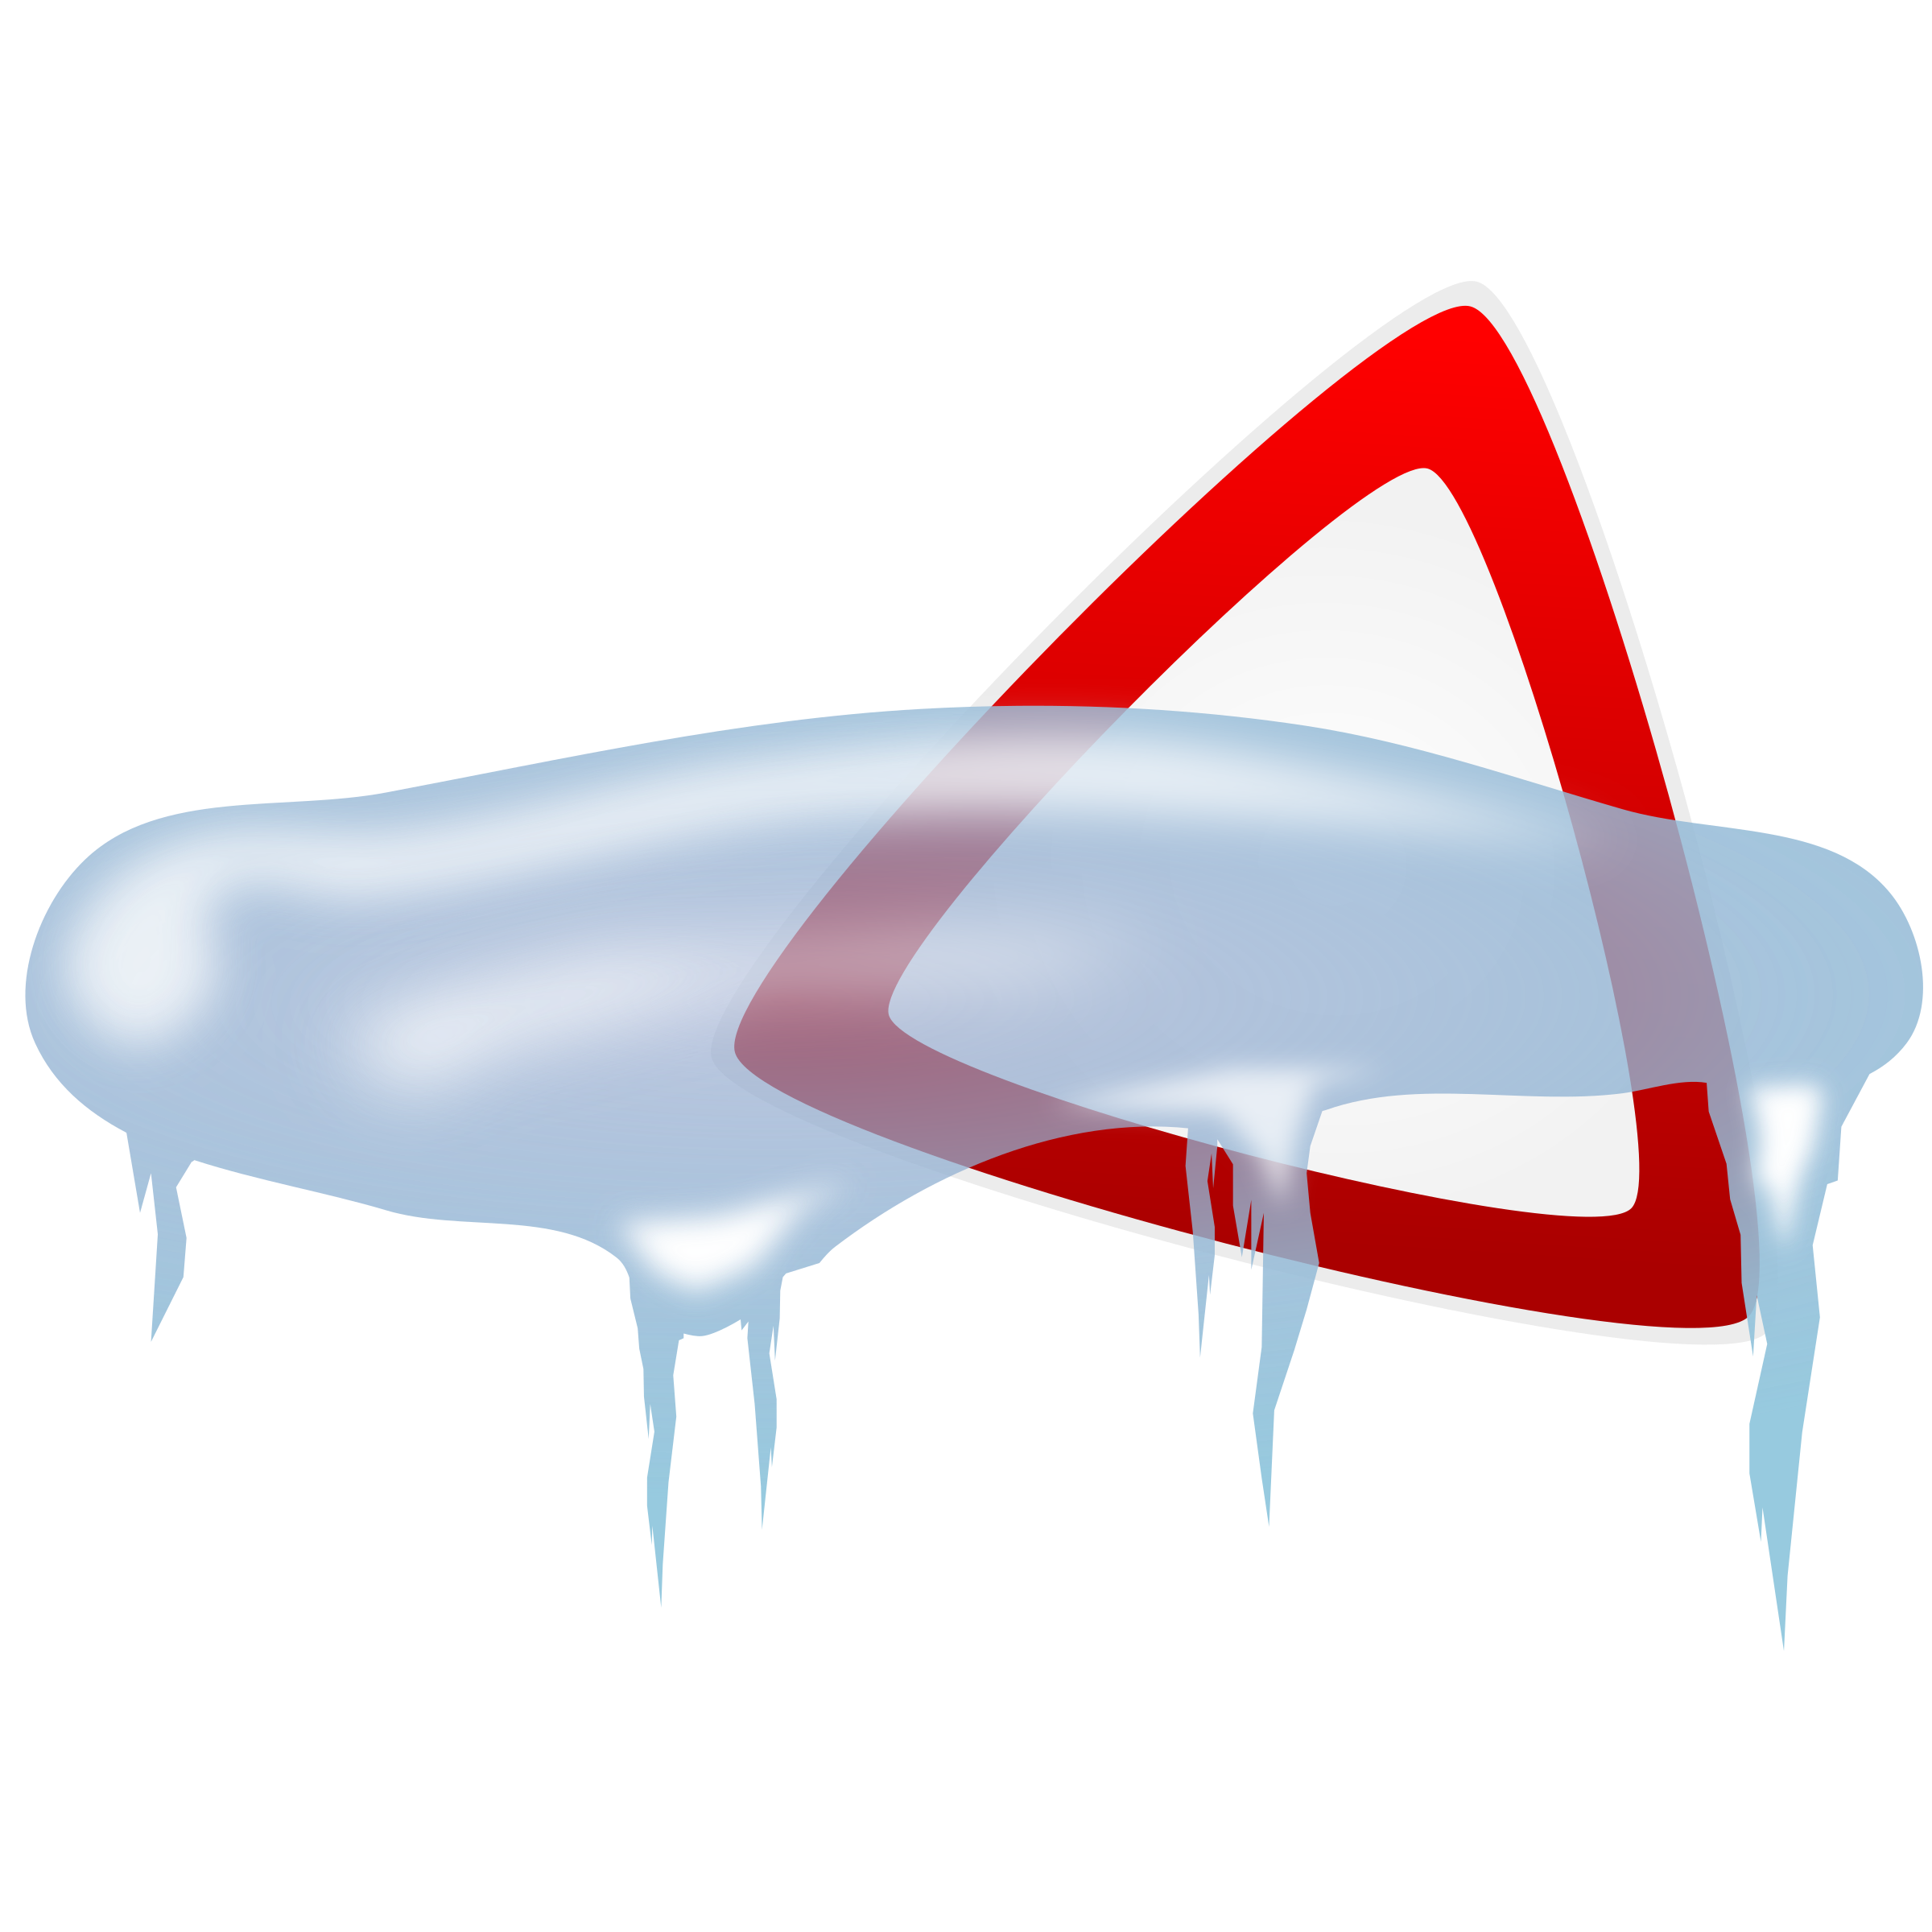 weather icon - frost by gnokii